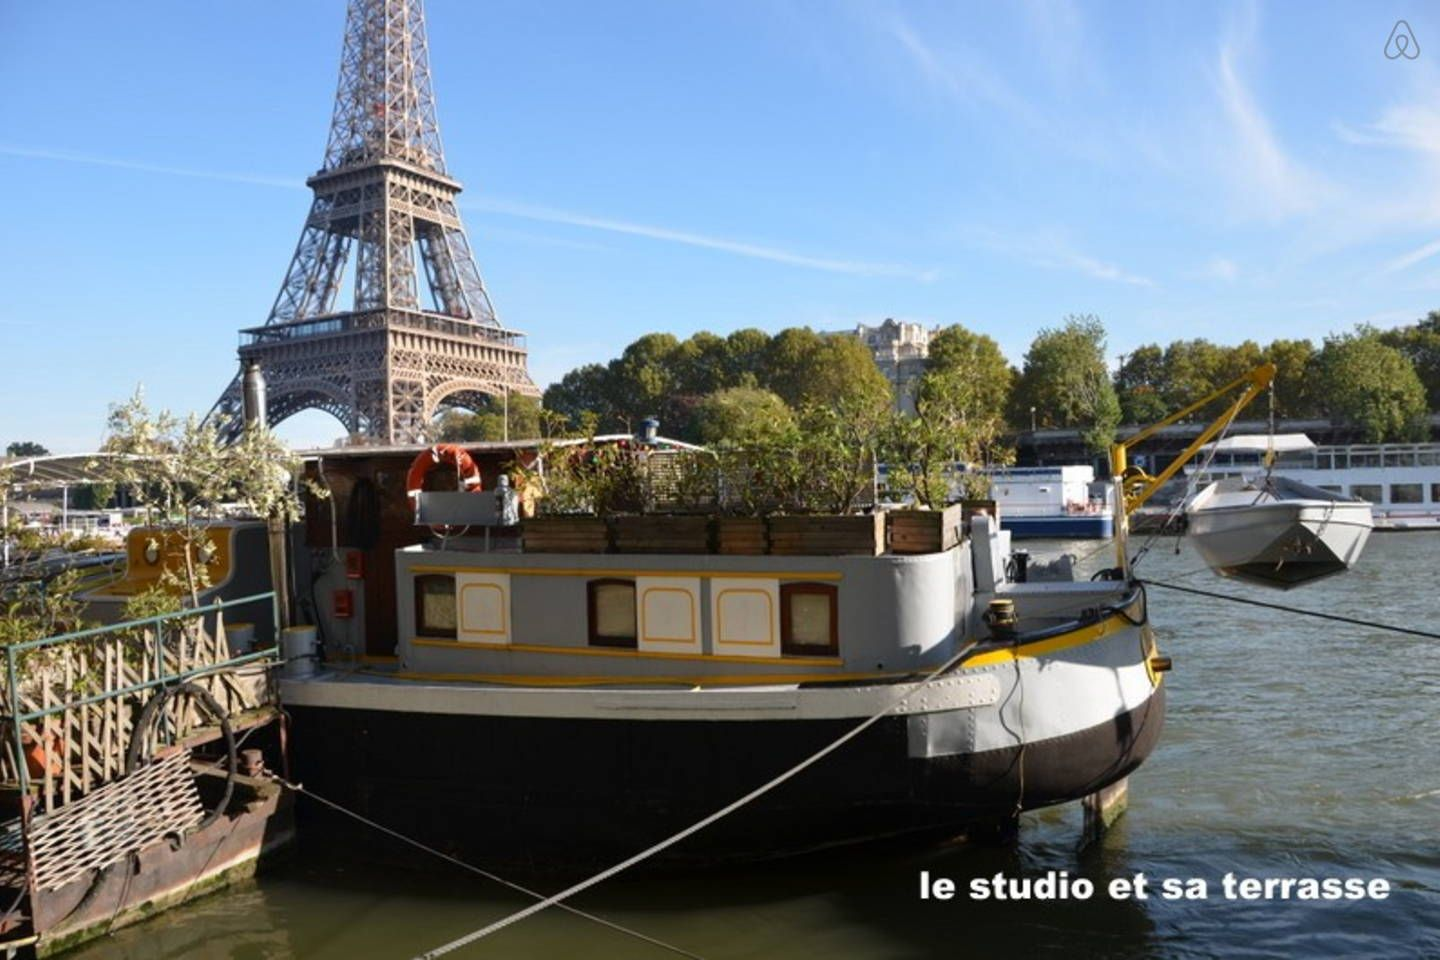 Airbnb Peniche Paris Airbnb Studio Péniche Face Tour Eiffel Dreaming Of Paris